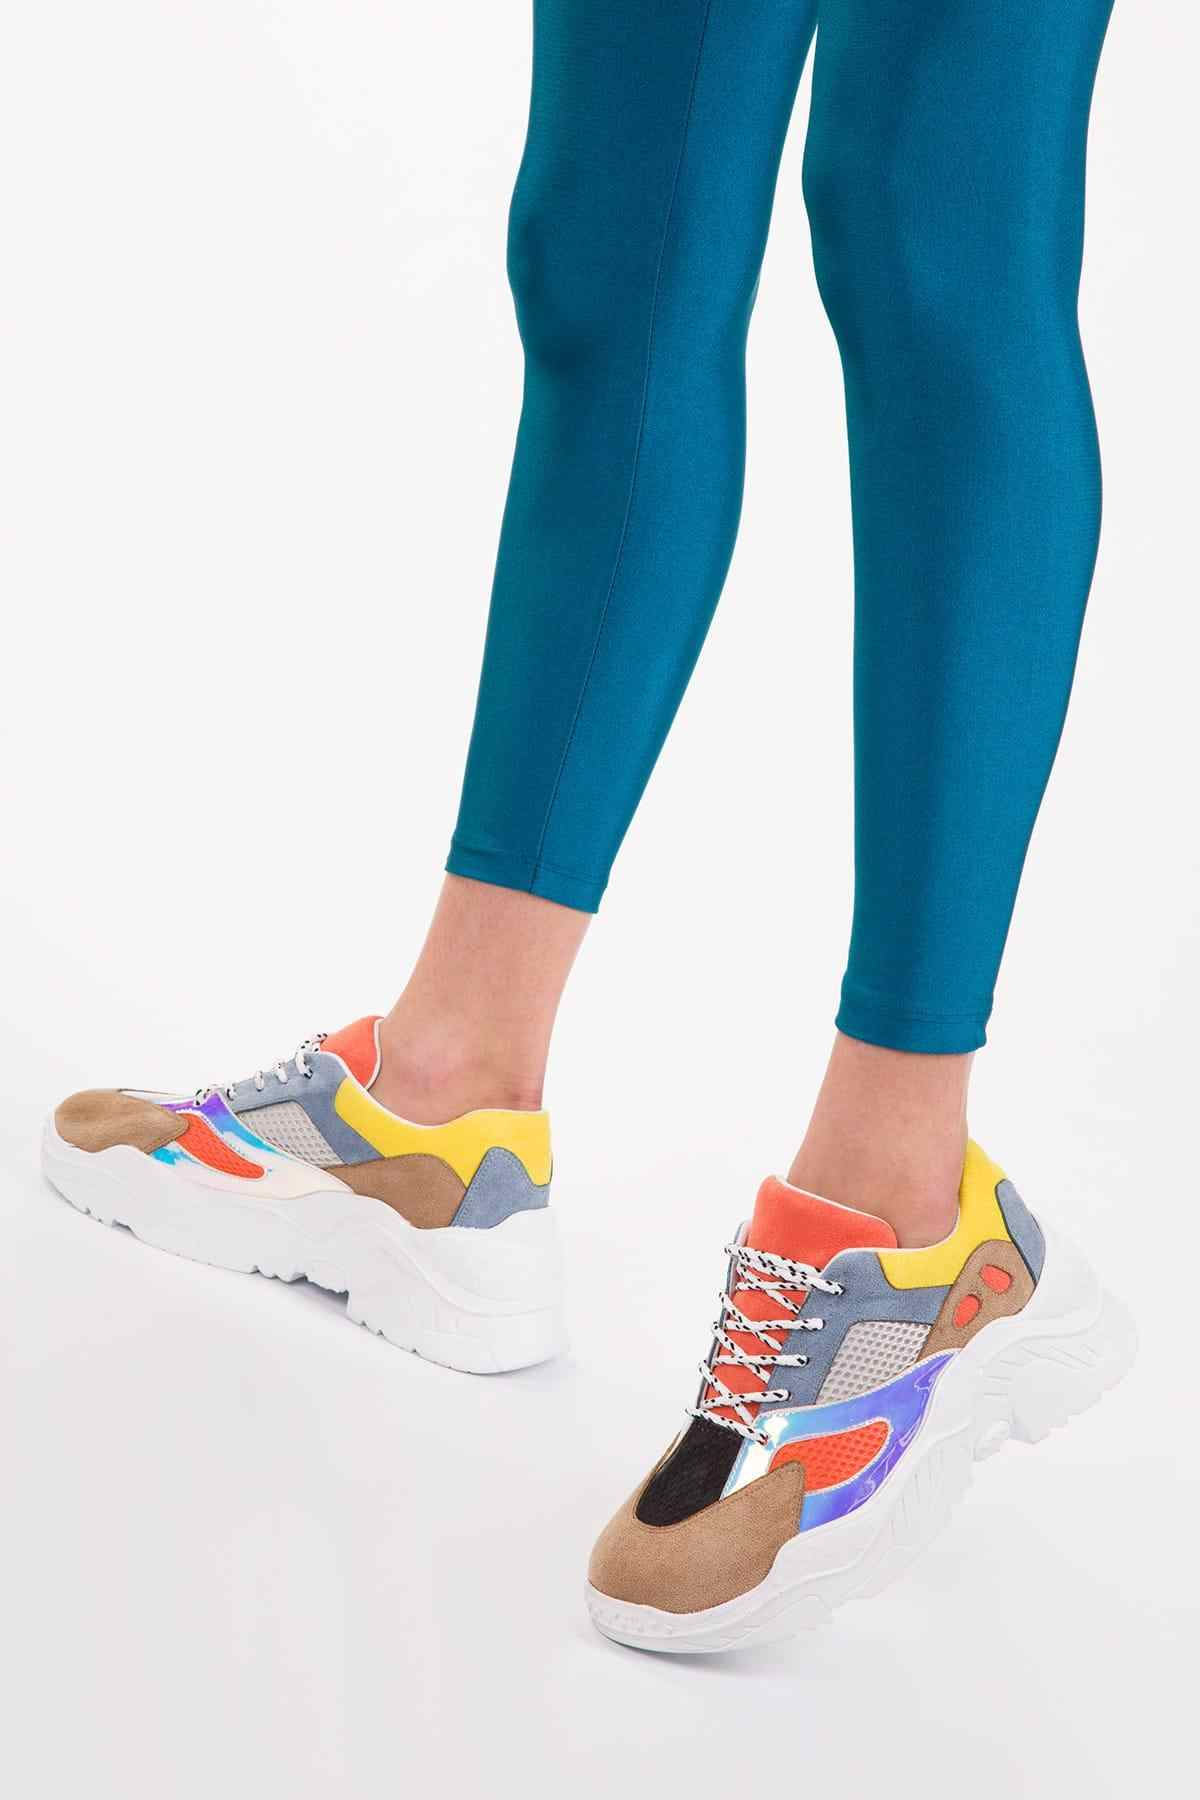 Soho Mixed Color Patchwork Design Women Casual Lace-up Sneaker White Platform Chunky Sports Shoes12927